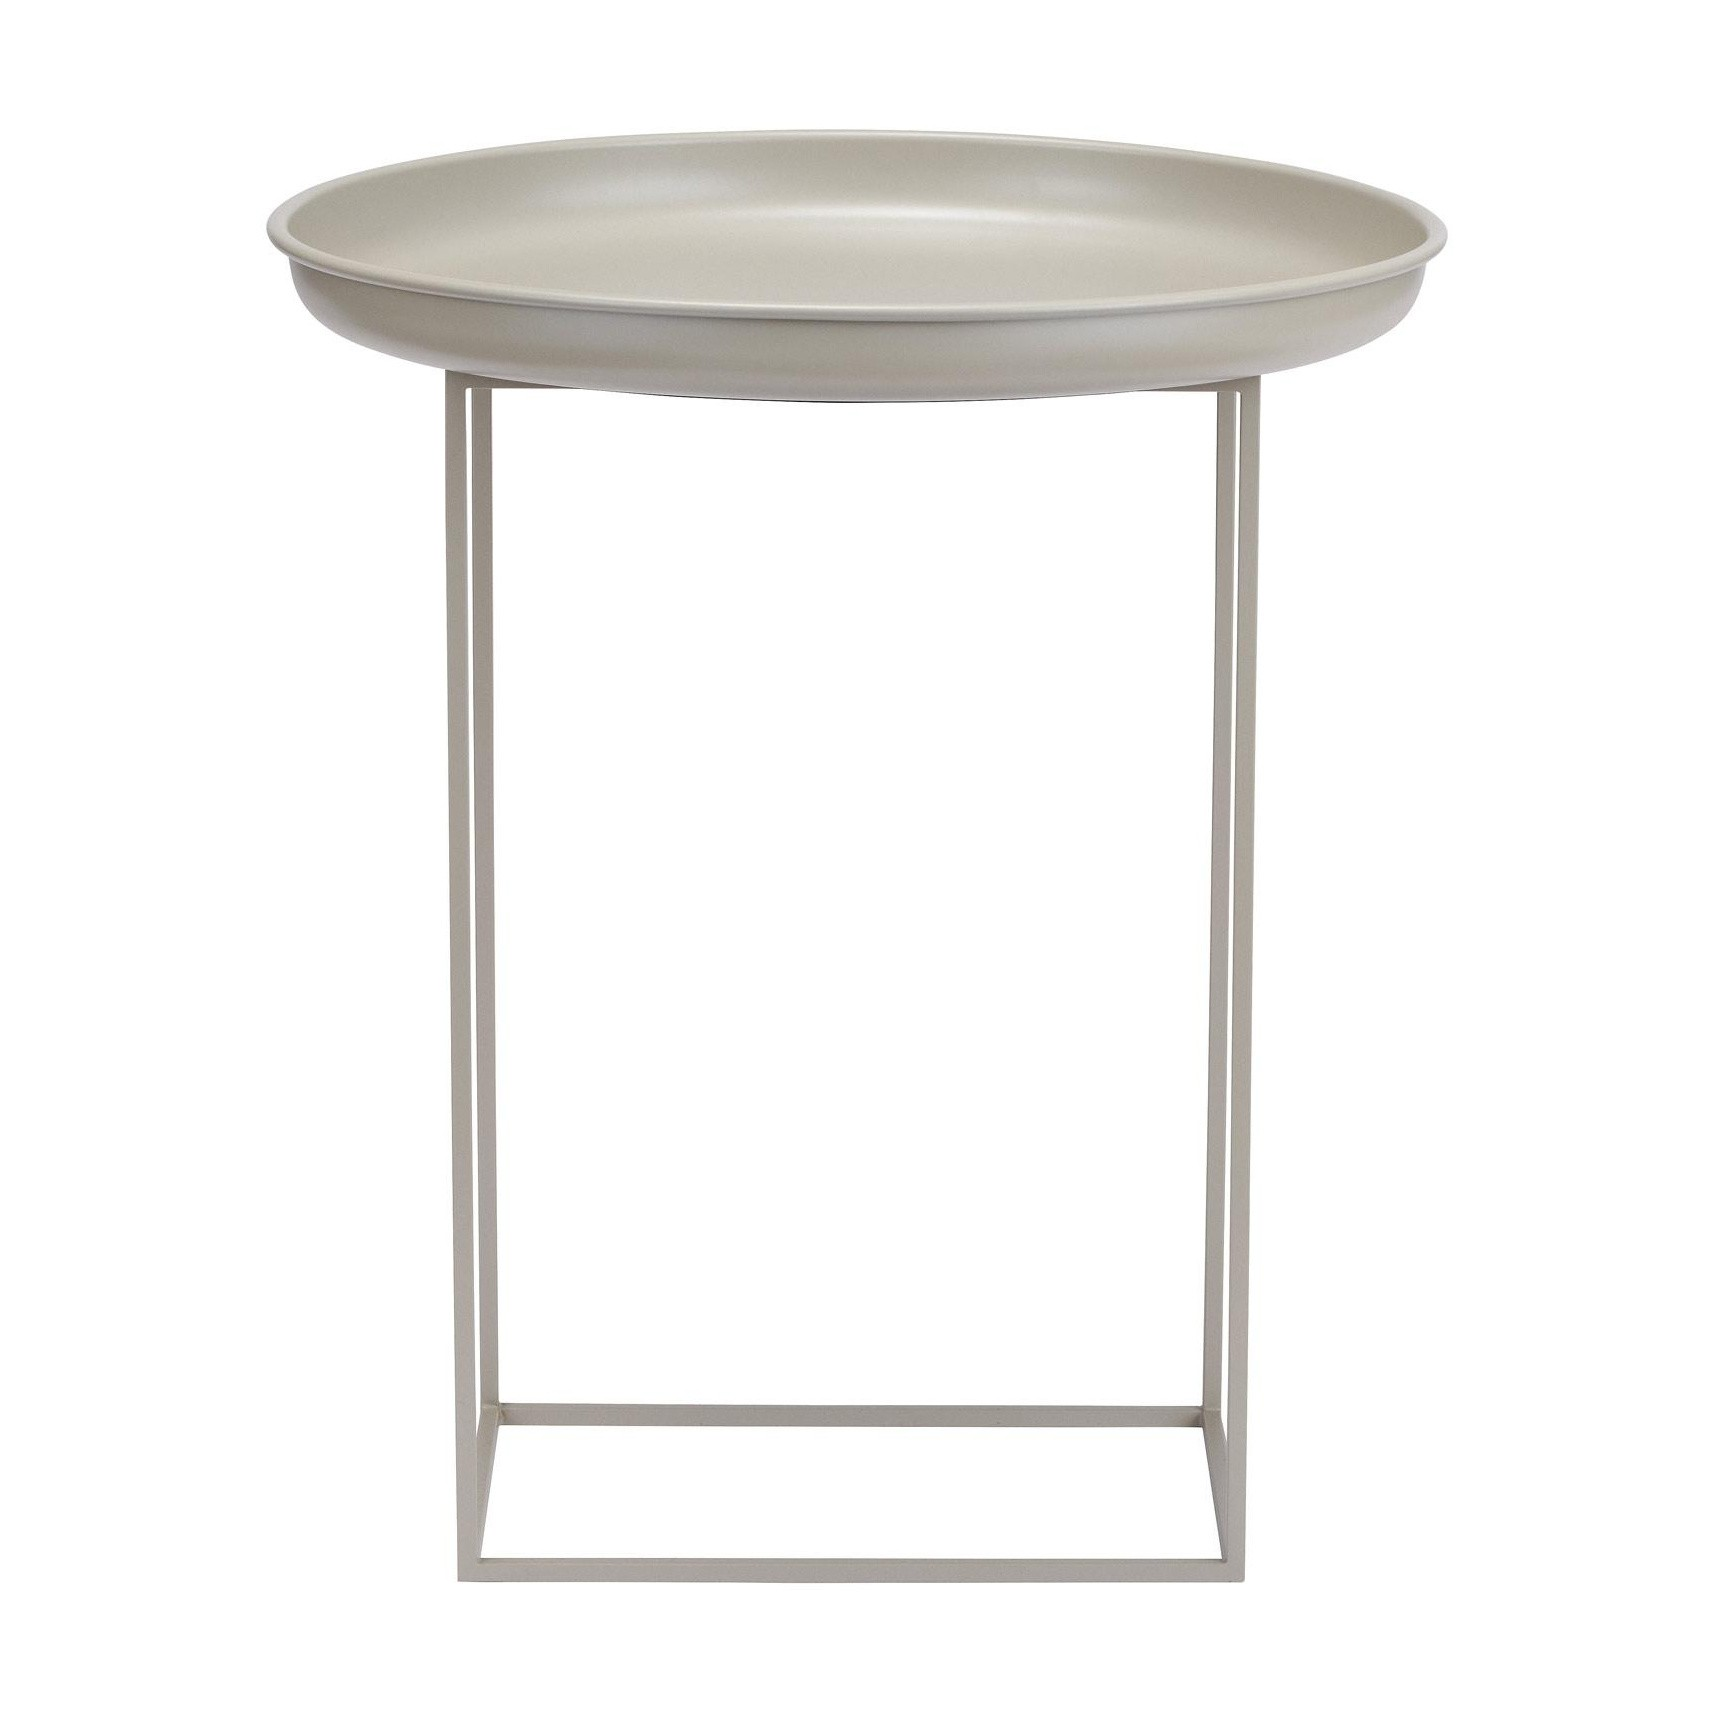 Picture of: Norr 11 Duke Small Side Table O 45cm Ambientedirect